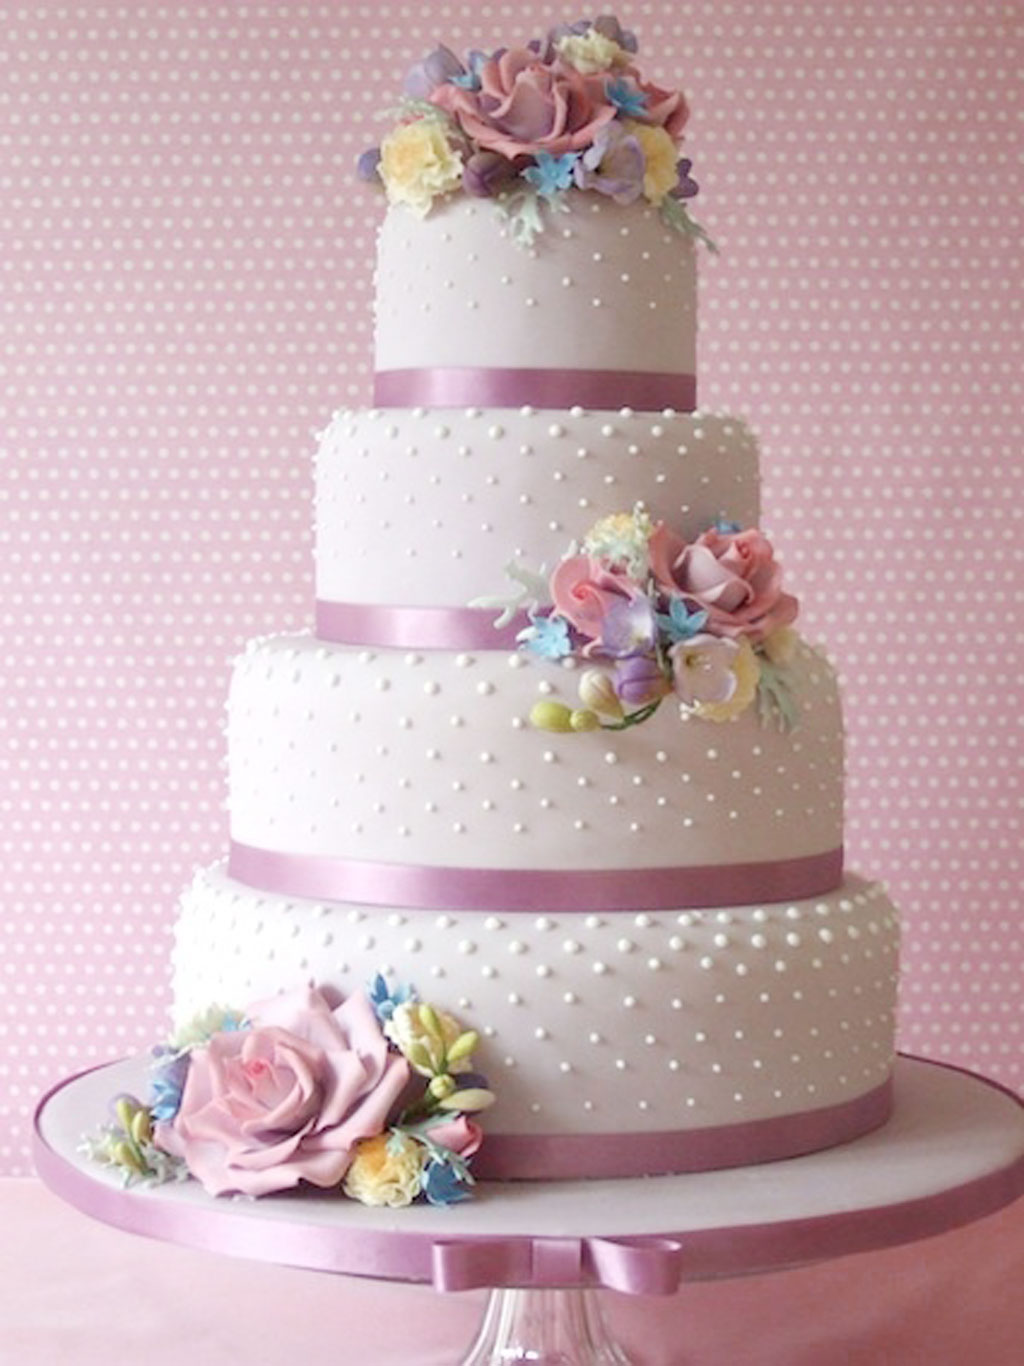 Cake K Design : Loves Beautiful Wedding Cake Design Wedding Cake - Cake ...